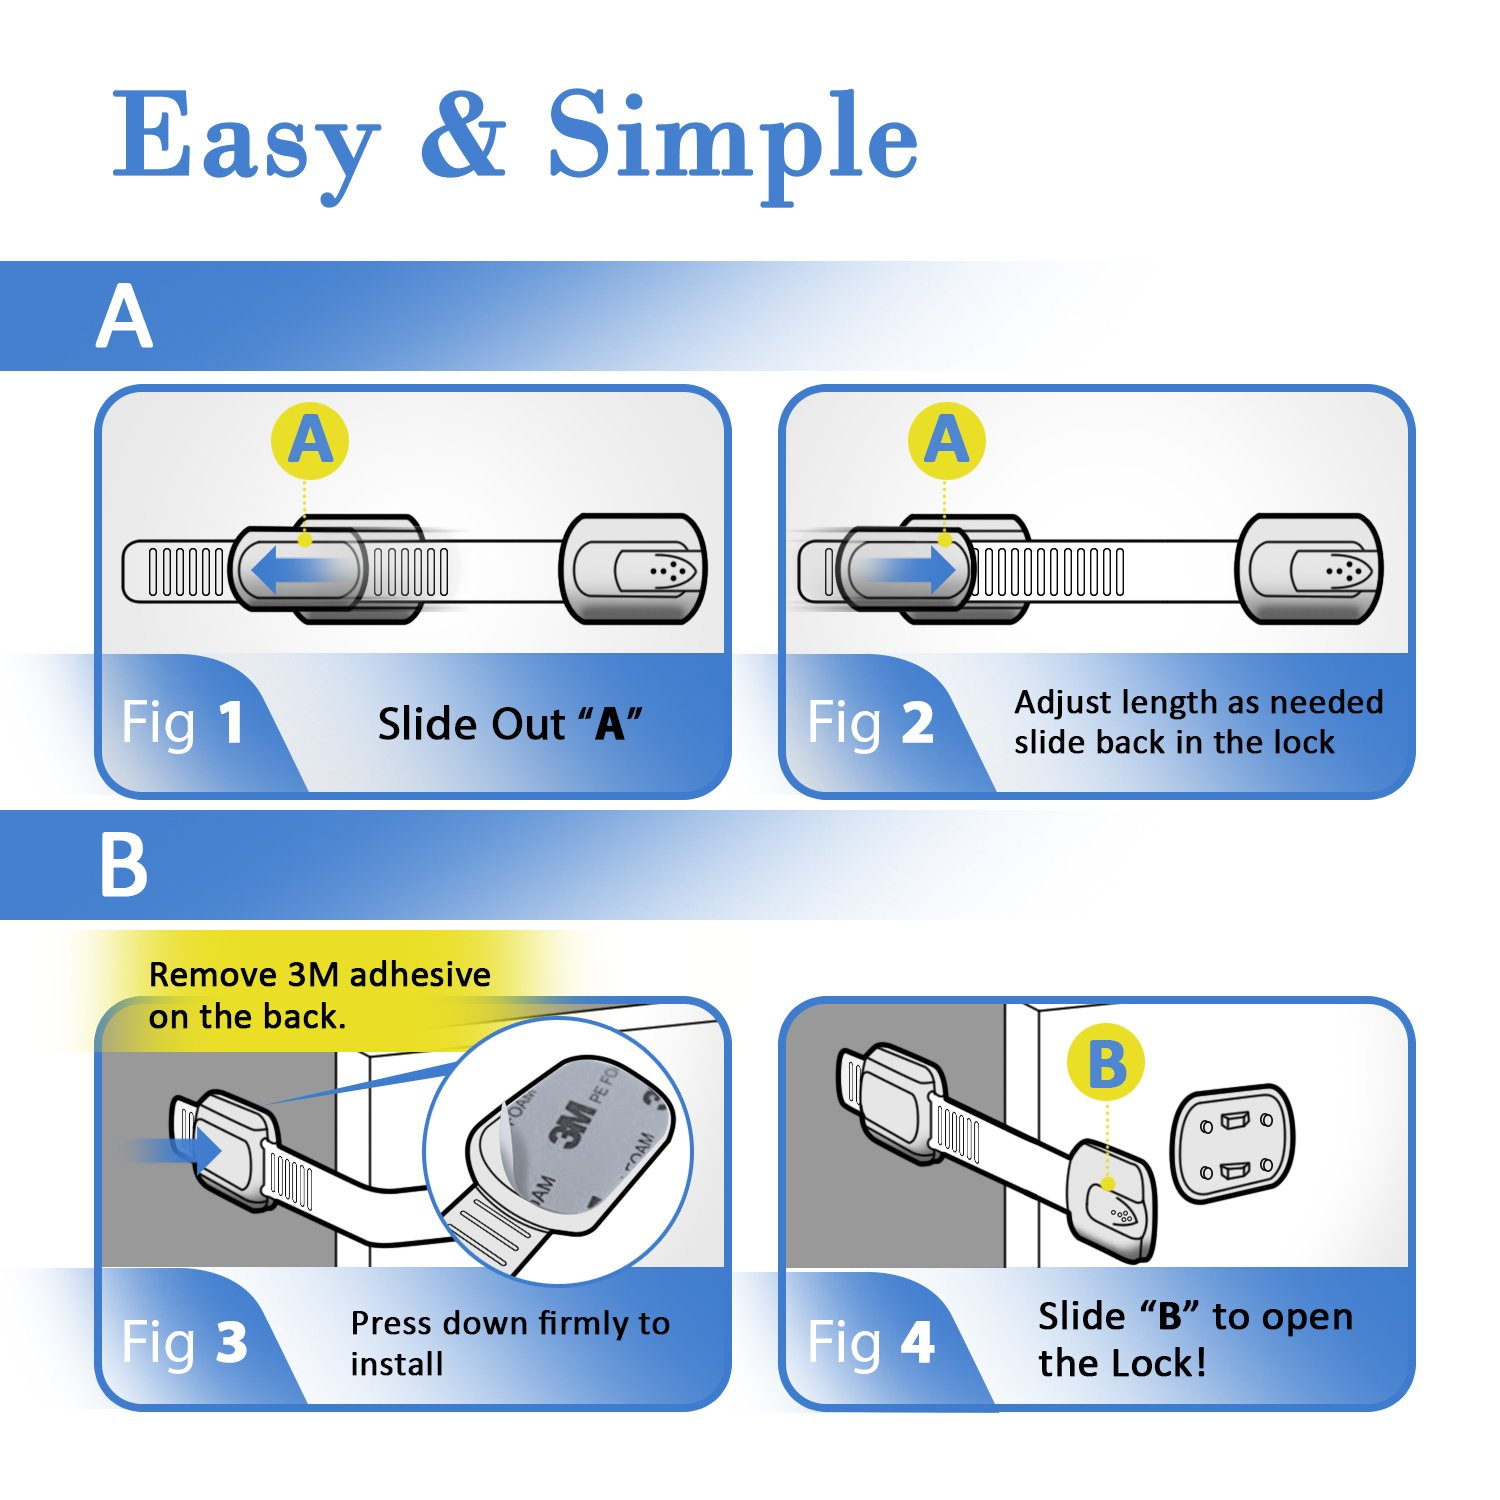 Child Safety Strap Locks (8 Pack) for Fridge, Cabinets, Drawers, Dishwasher, Toilet, 3M Adhesive No Drilling - Jool Baby by Jool Baby Products (Image #3)